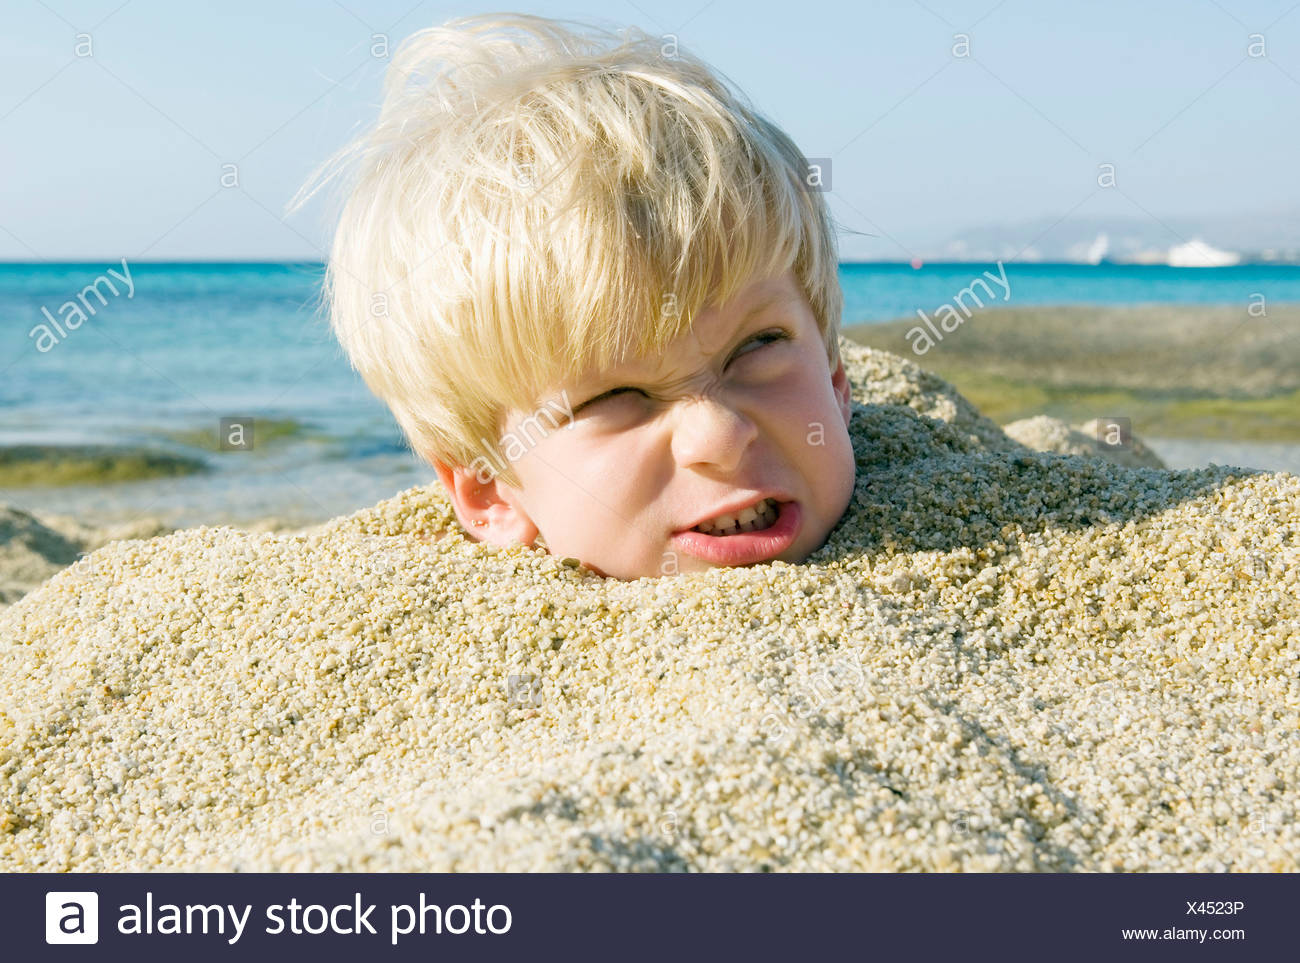 Young boy buried in the sand scowling. - Stock Image